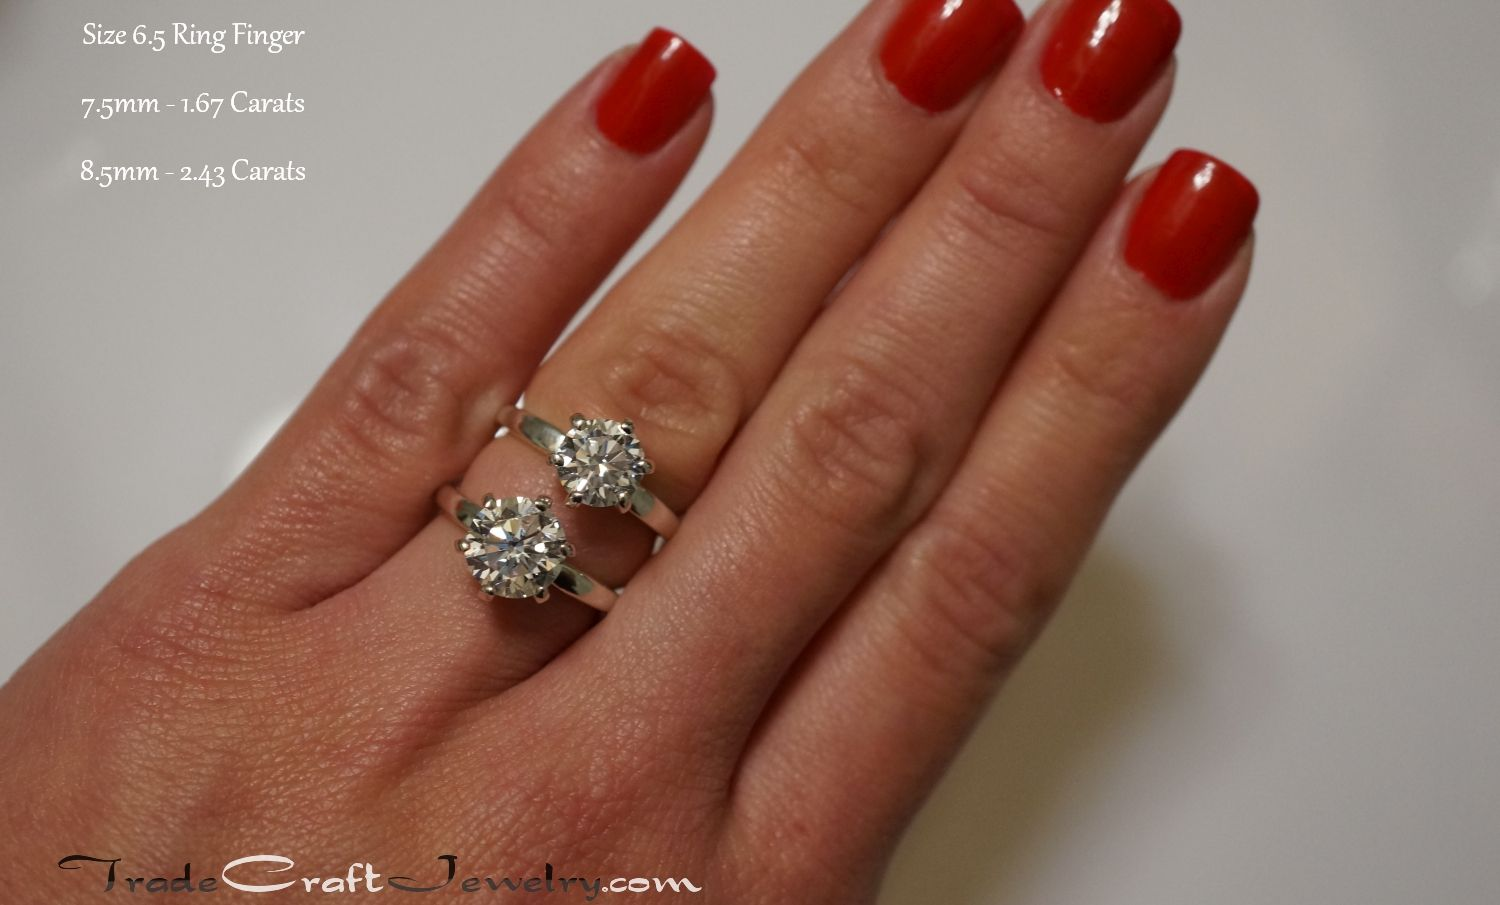 Find This Pin And More On Cz Engagement Ring Hand Shots & Stone Size Parisons